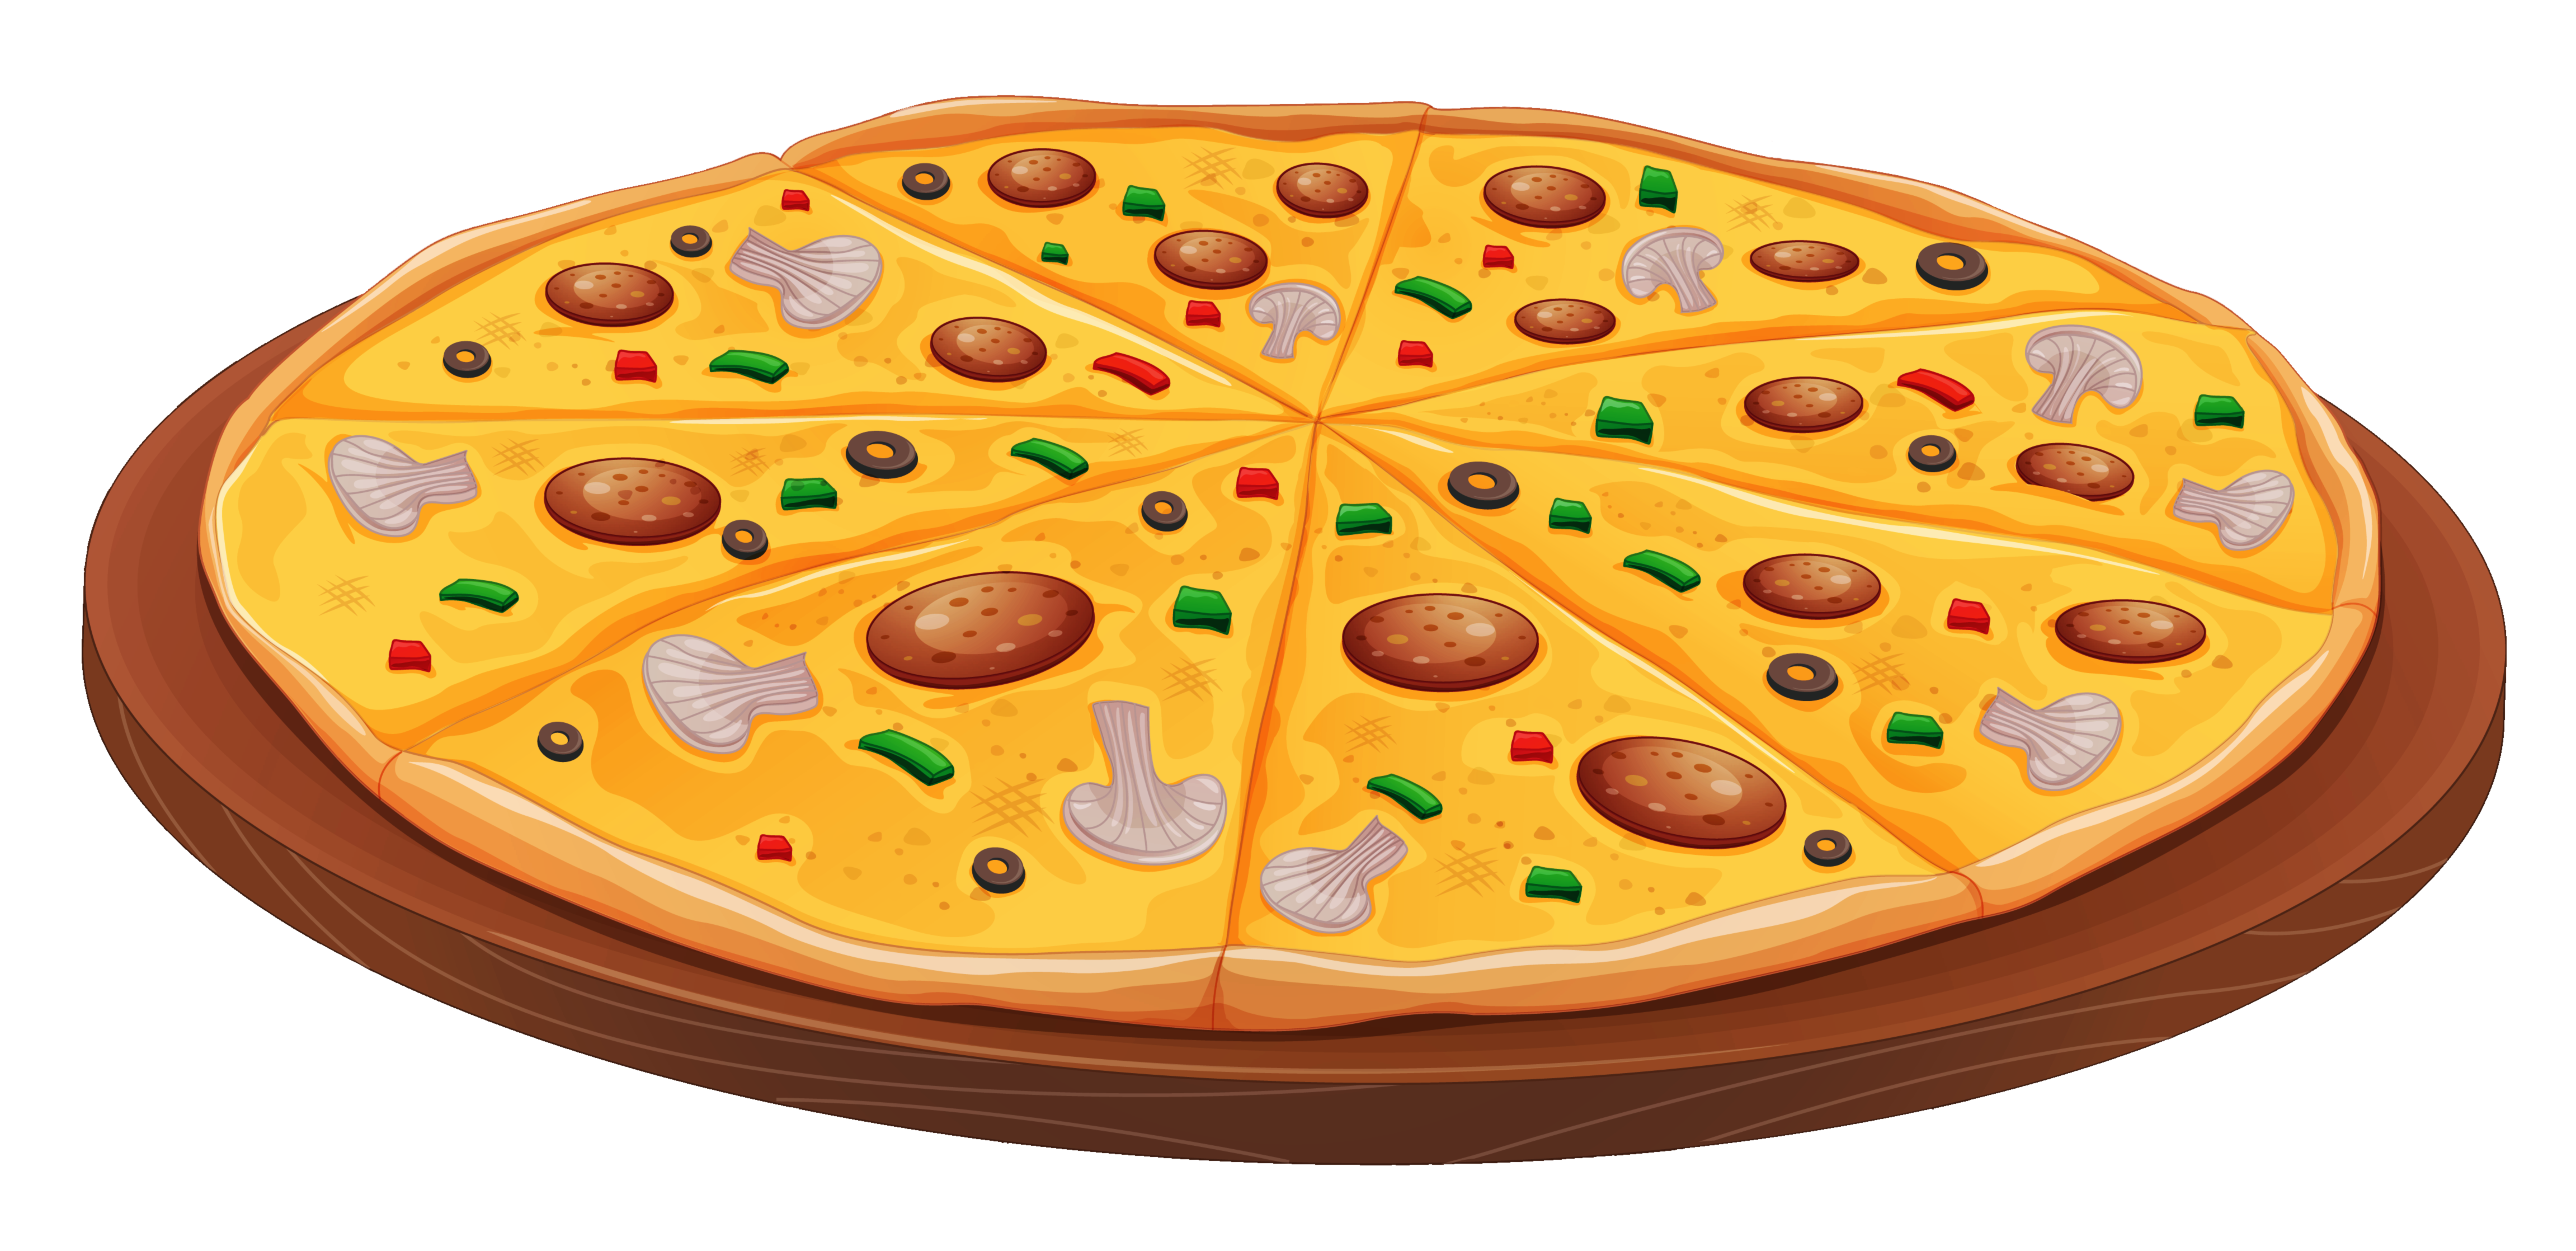 Pizza clip art free download clipart images 5.